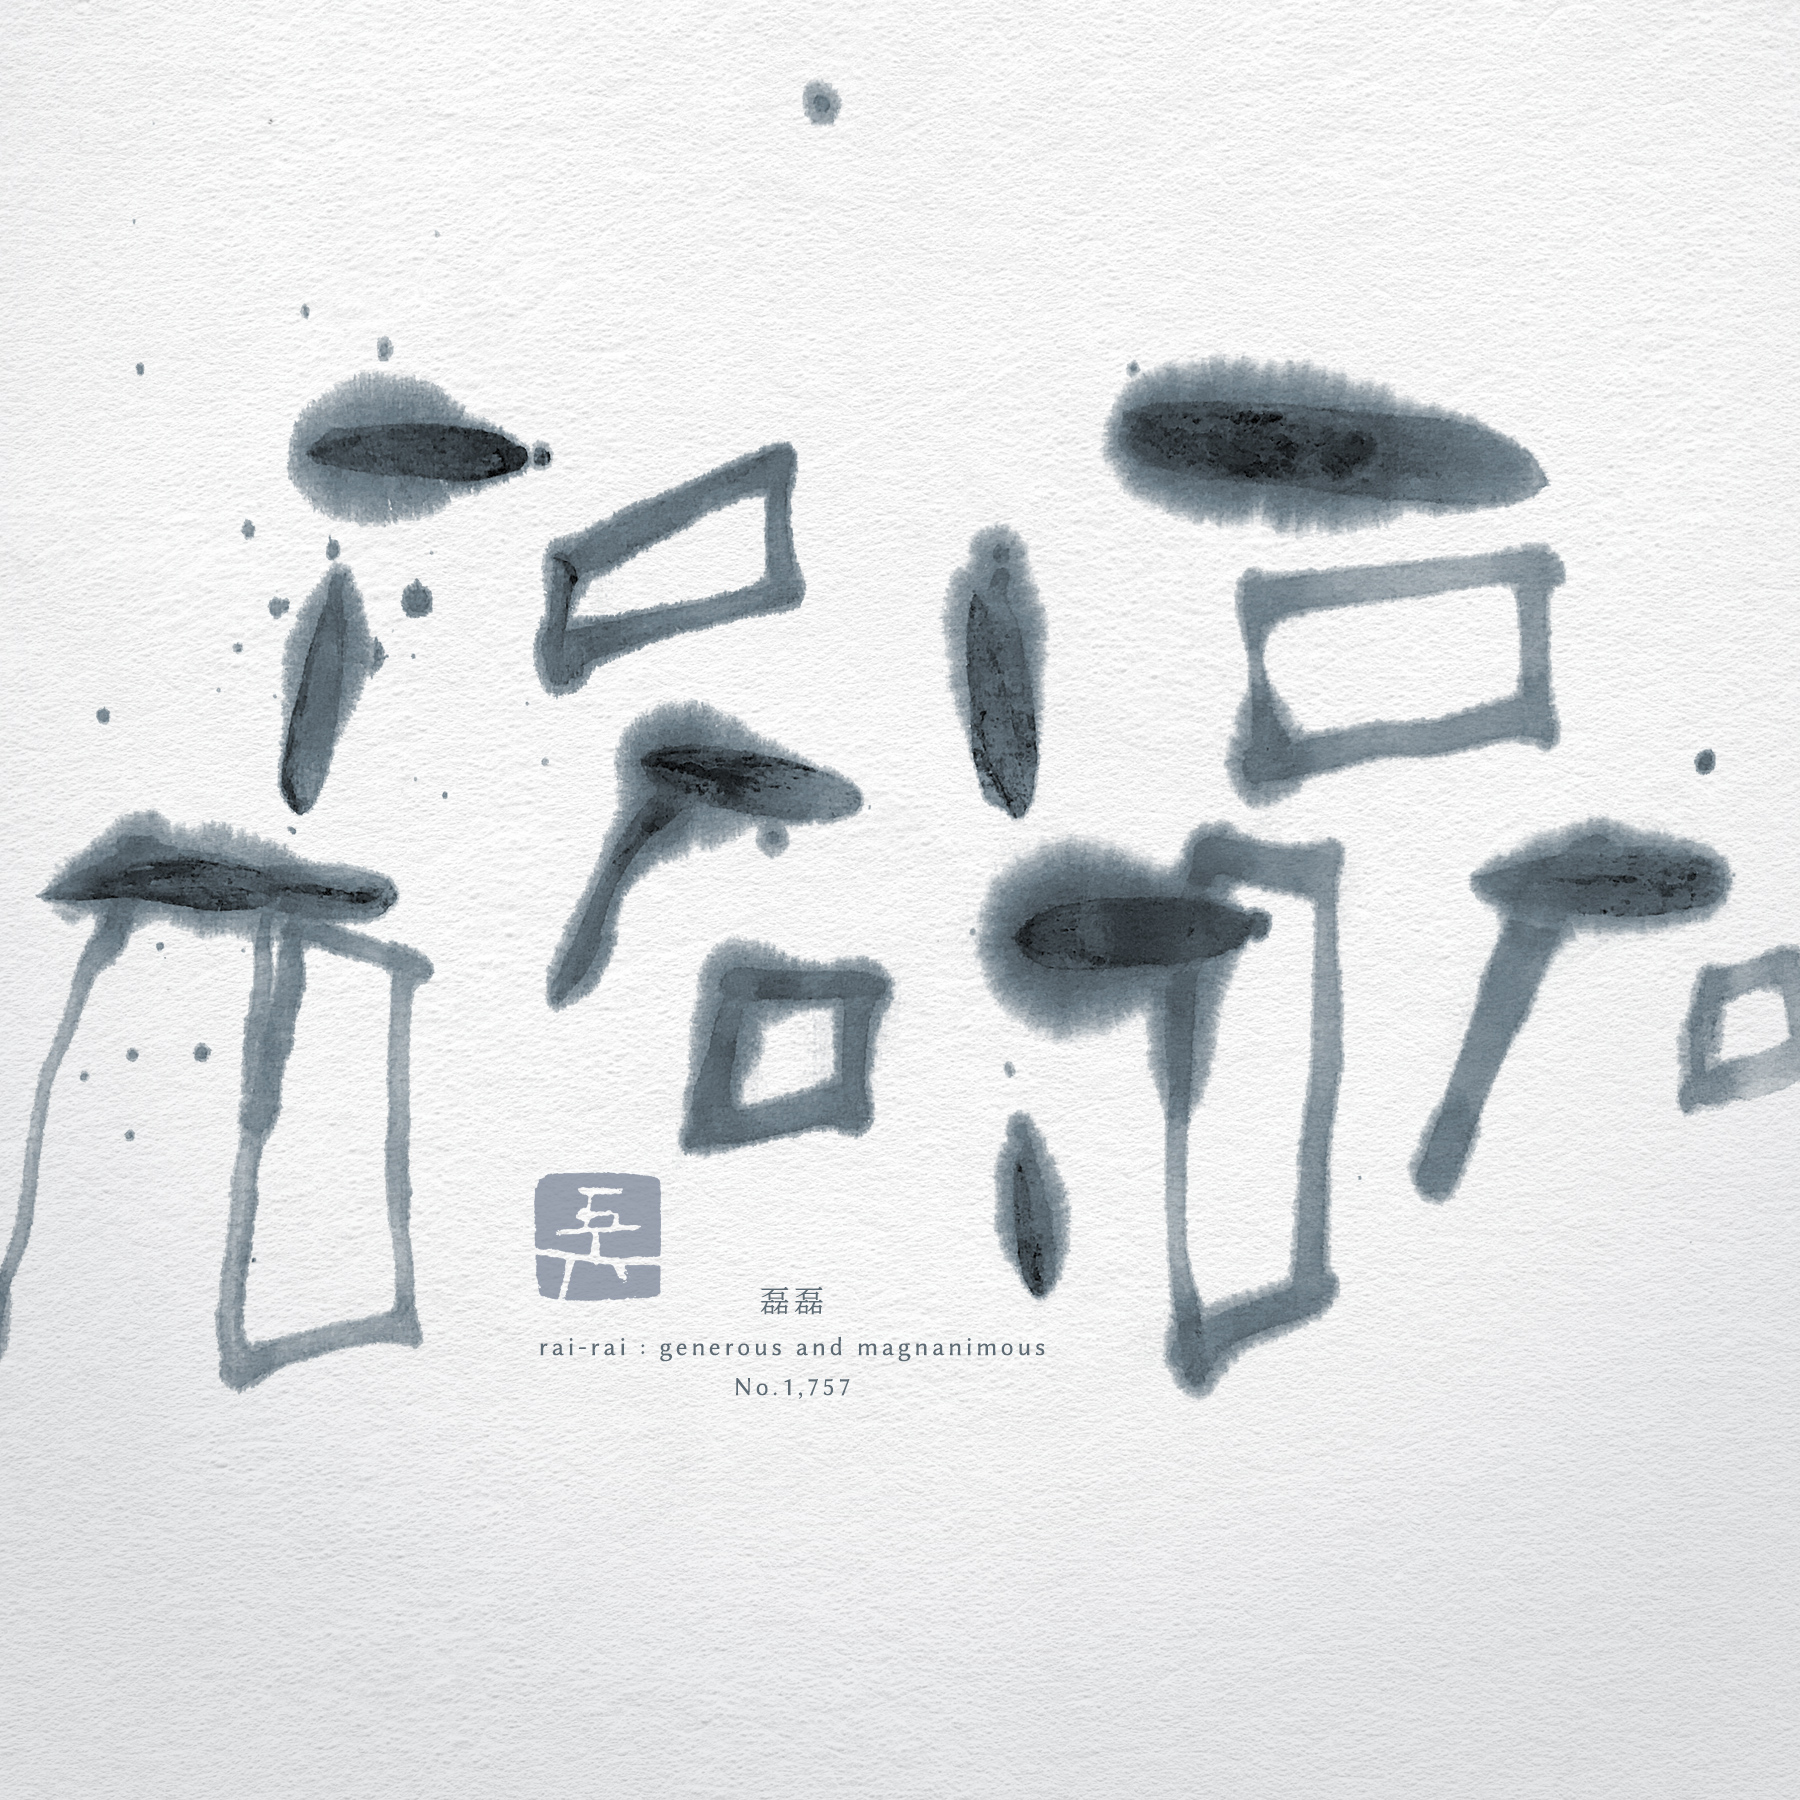 磊磊 | generous and magnanimous 書道作品 japaneseart japanese calligraphy 書家 田川悟郎 Goroh Tagawa